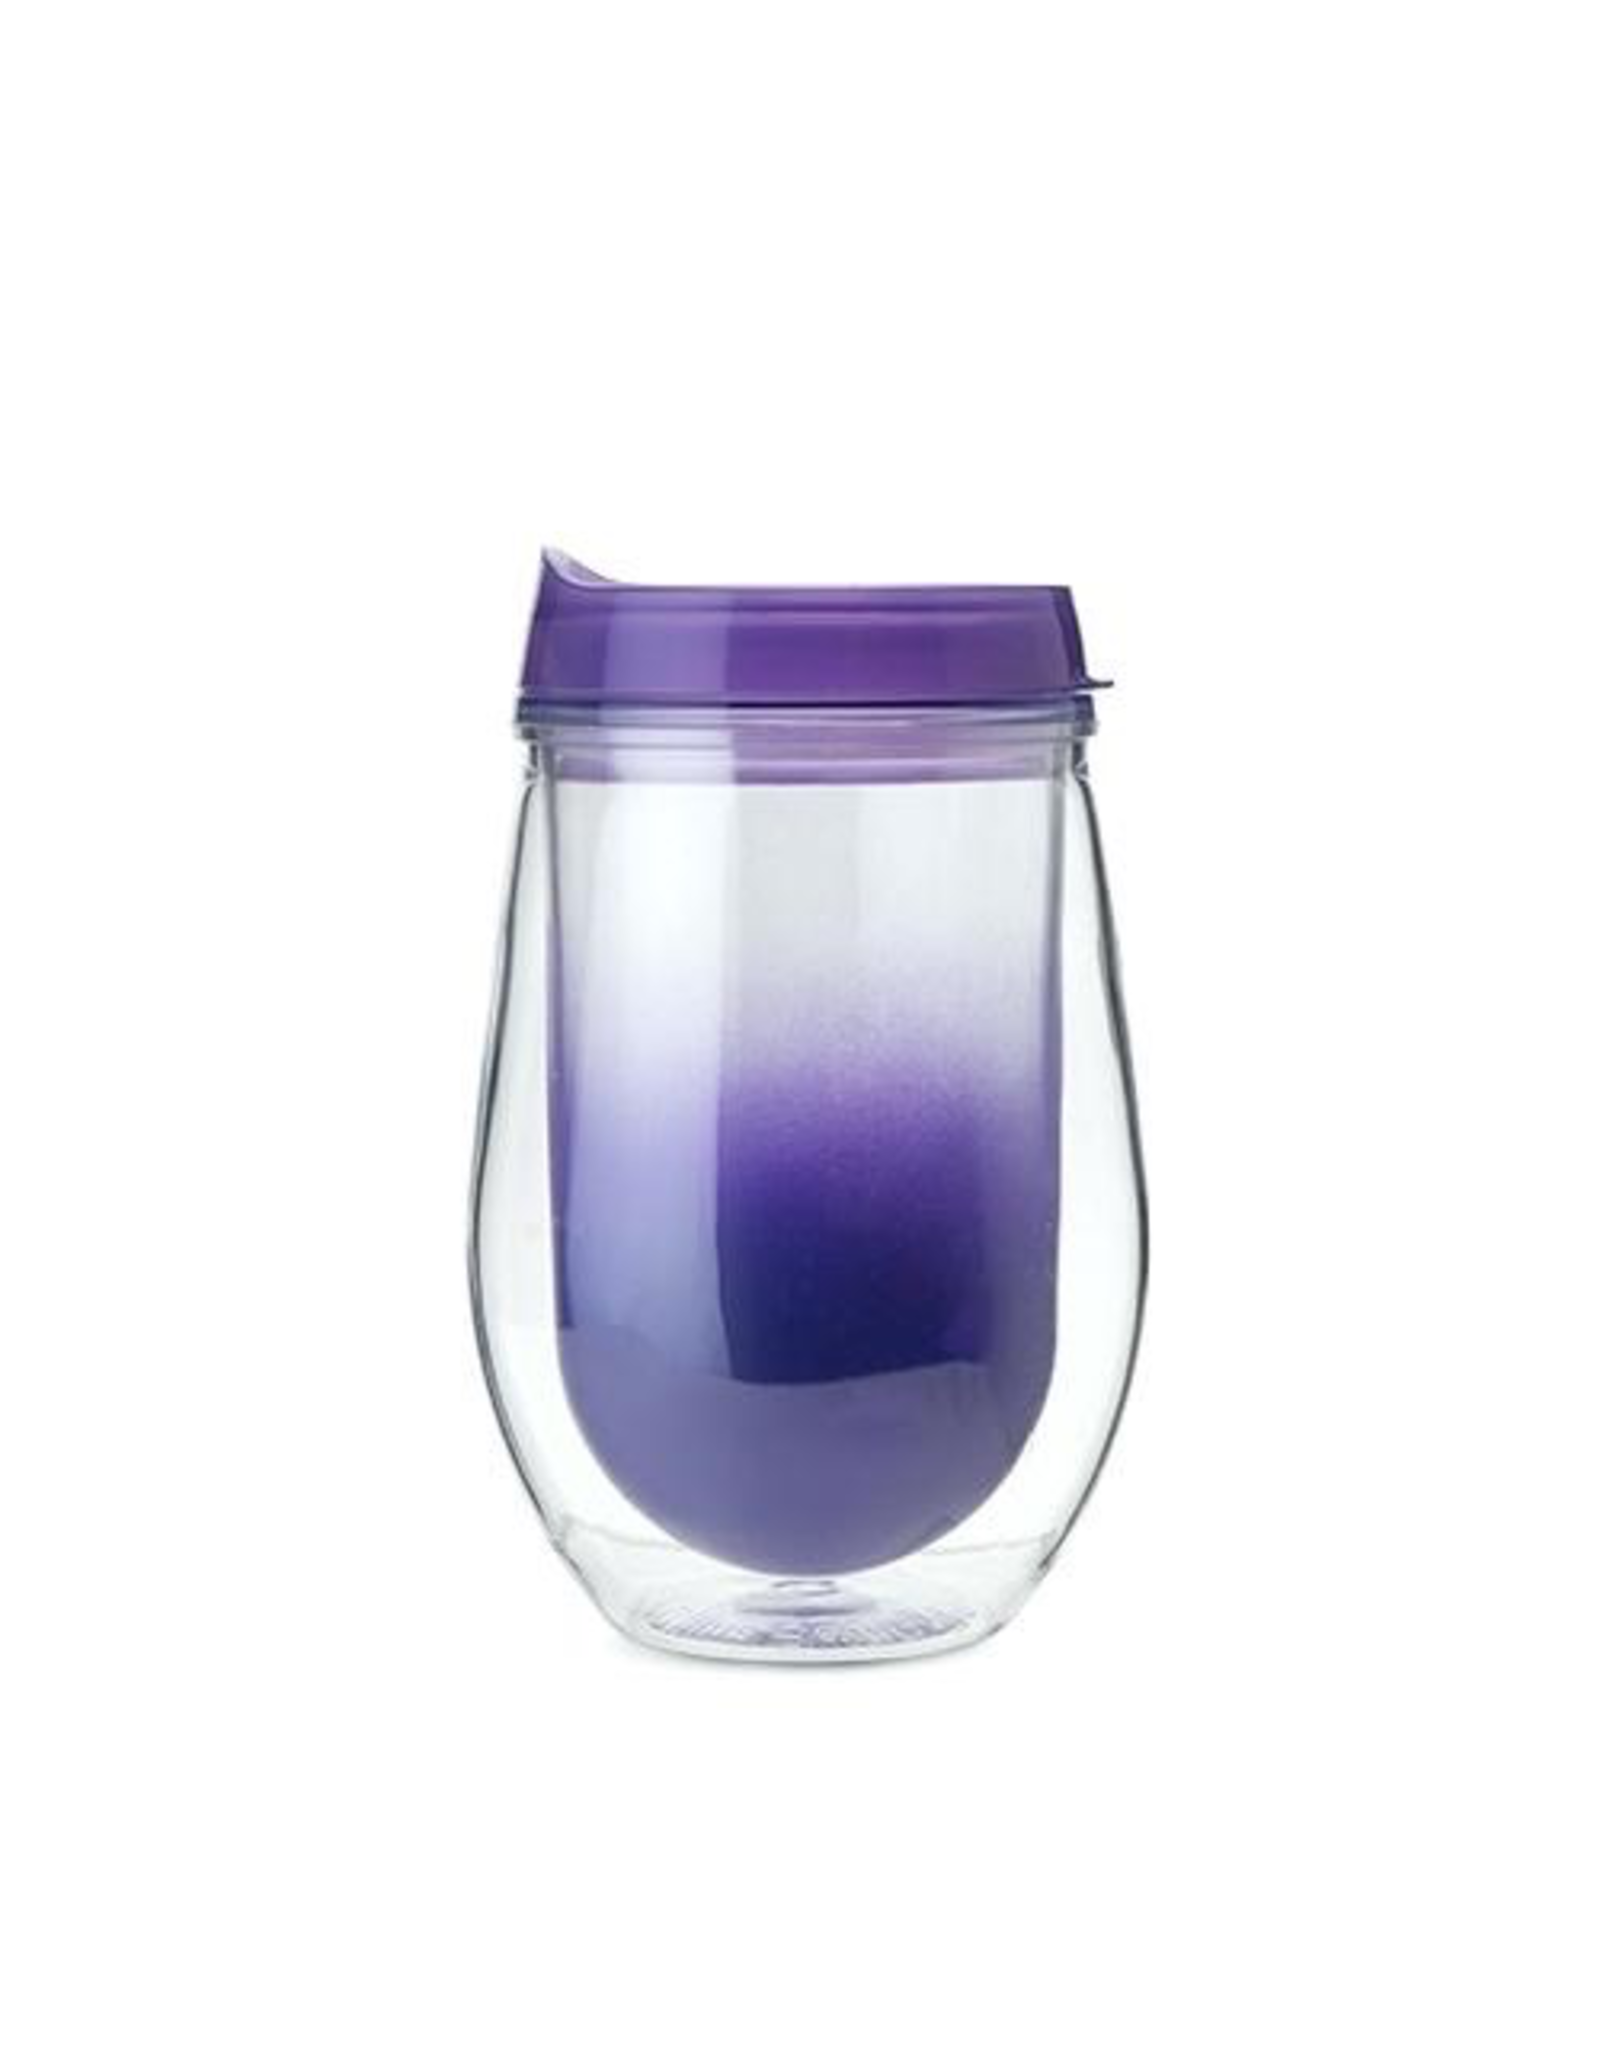 Specialty Product ONE (1) TRAVELER Wine Cup, Double Walled Insulated with No-Spill Lid (Assorted Colors)